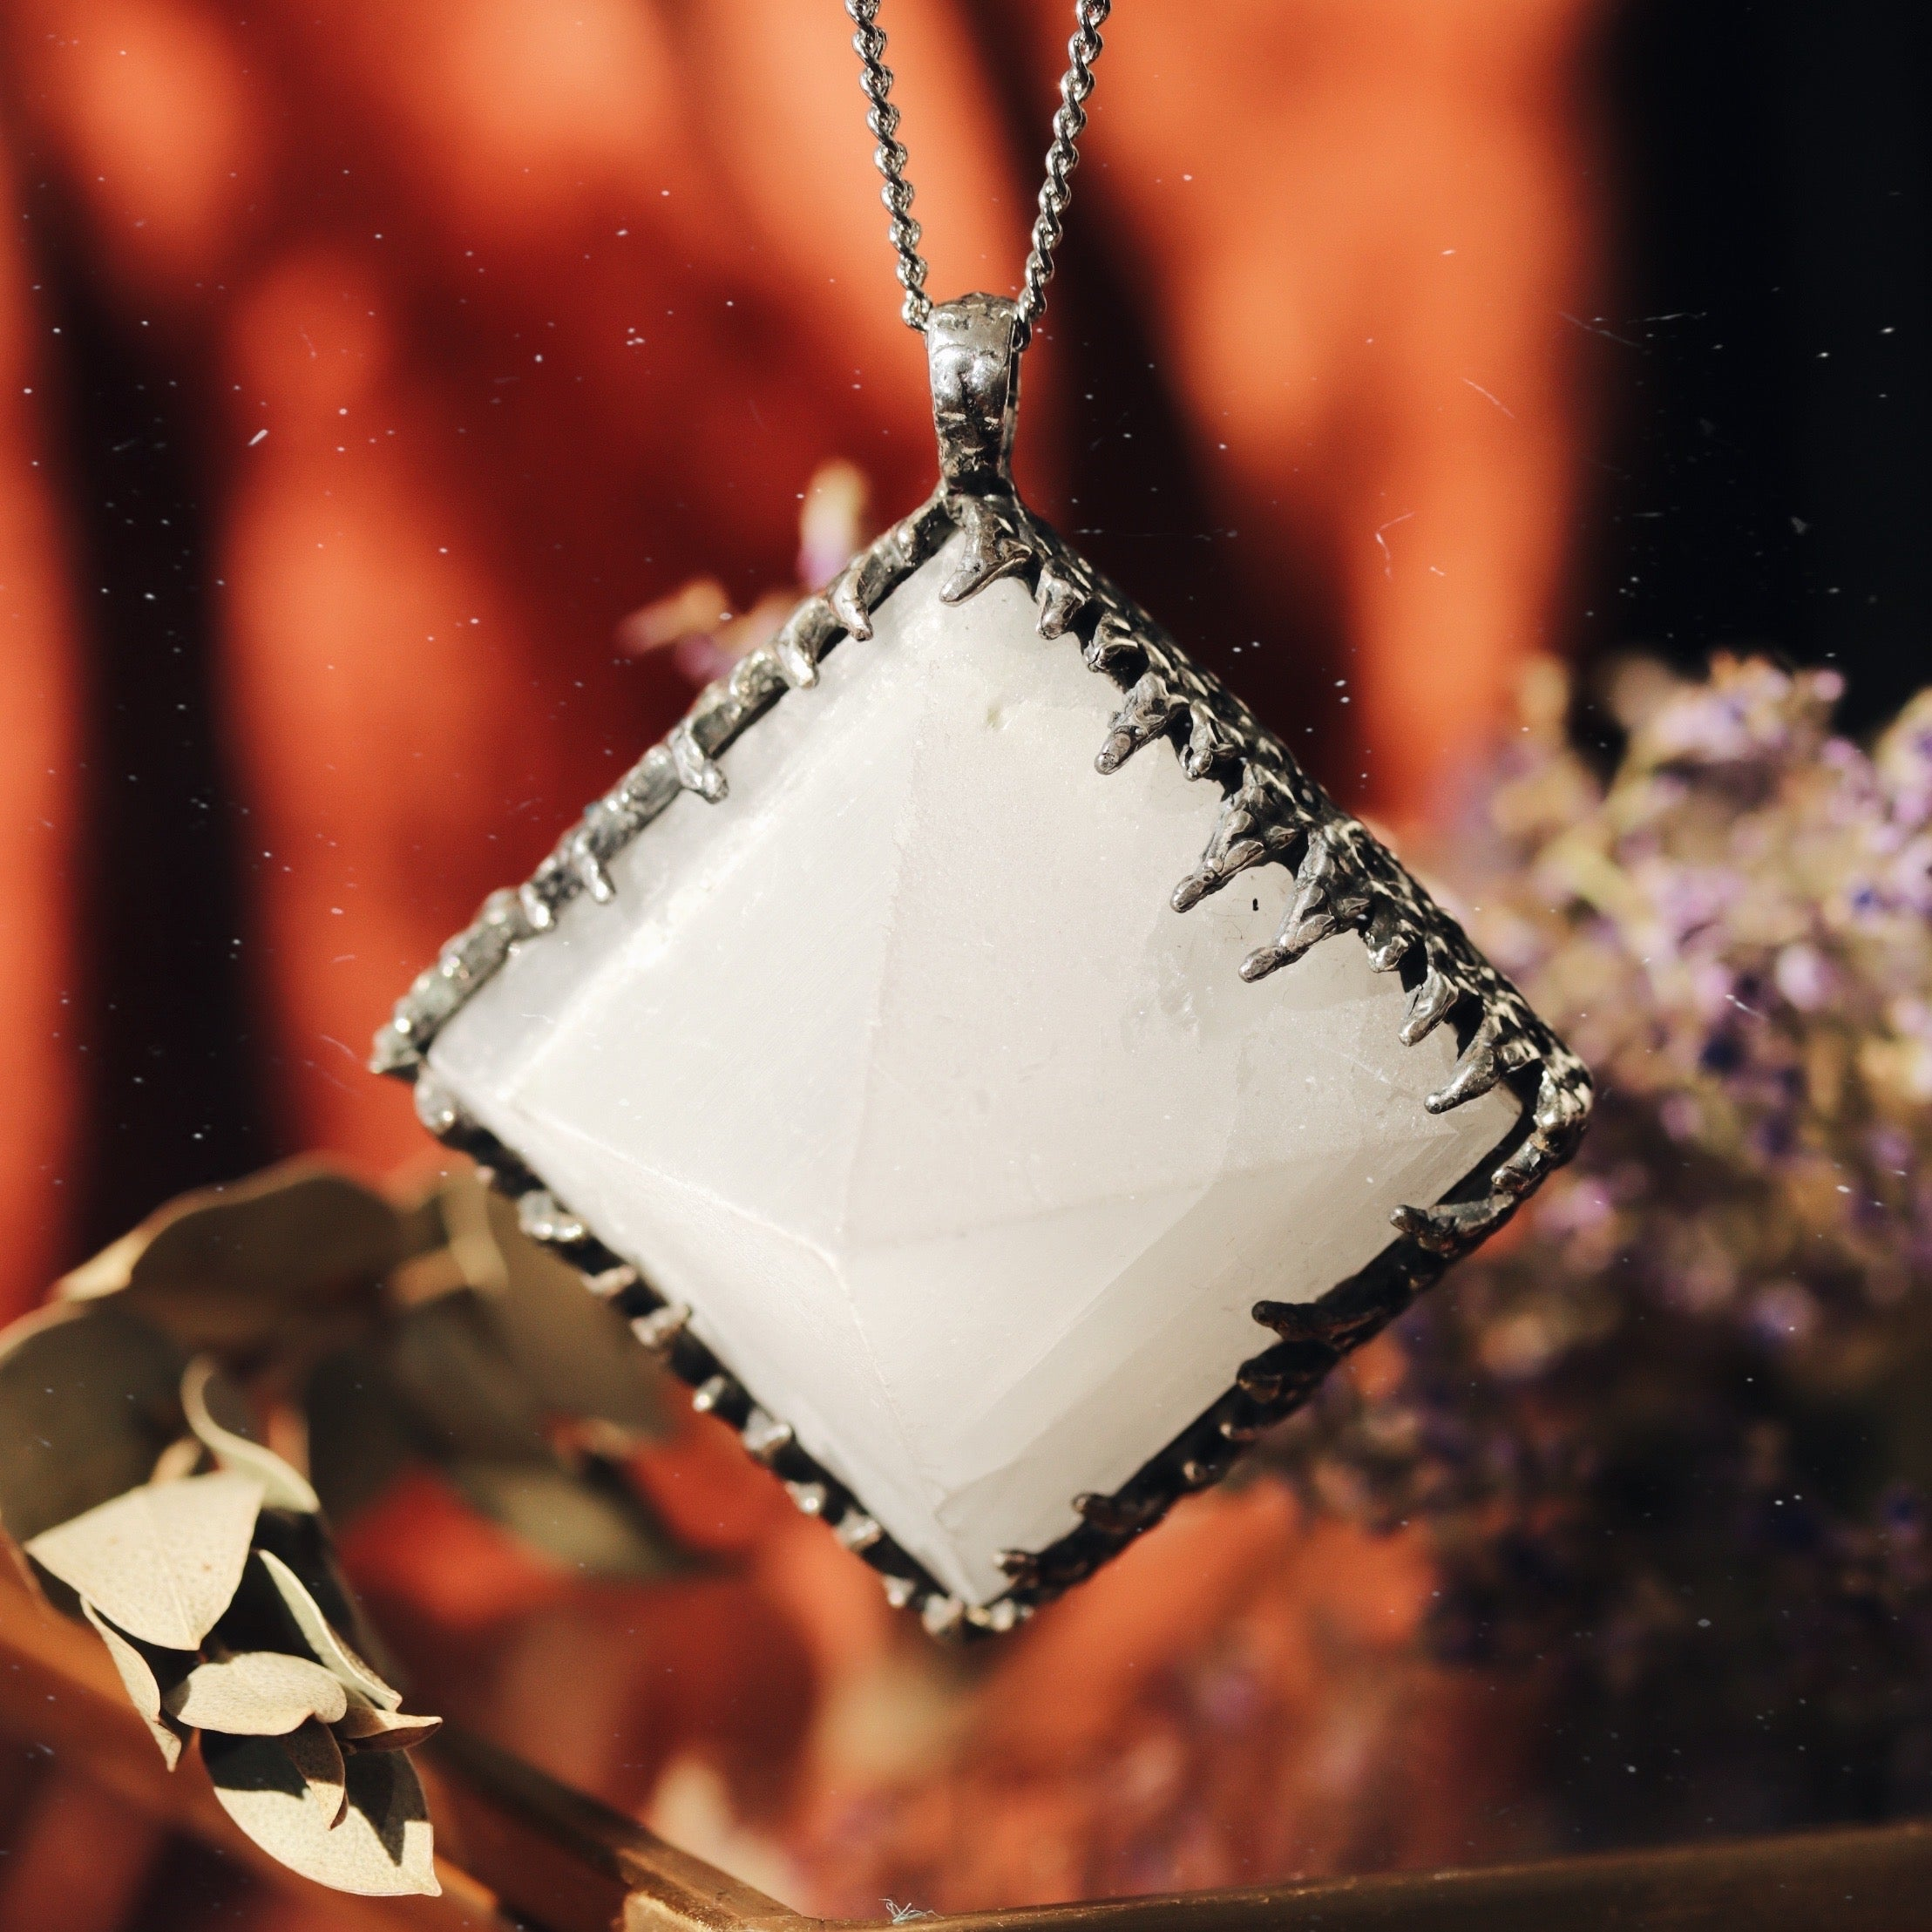 Freyr Selenite Icicle Crystal Pyramid Necklace #20